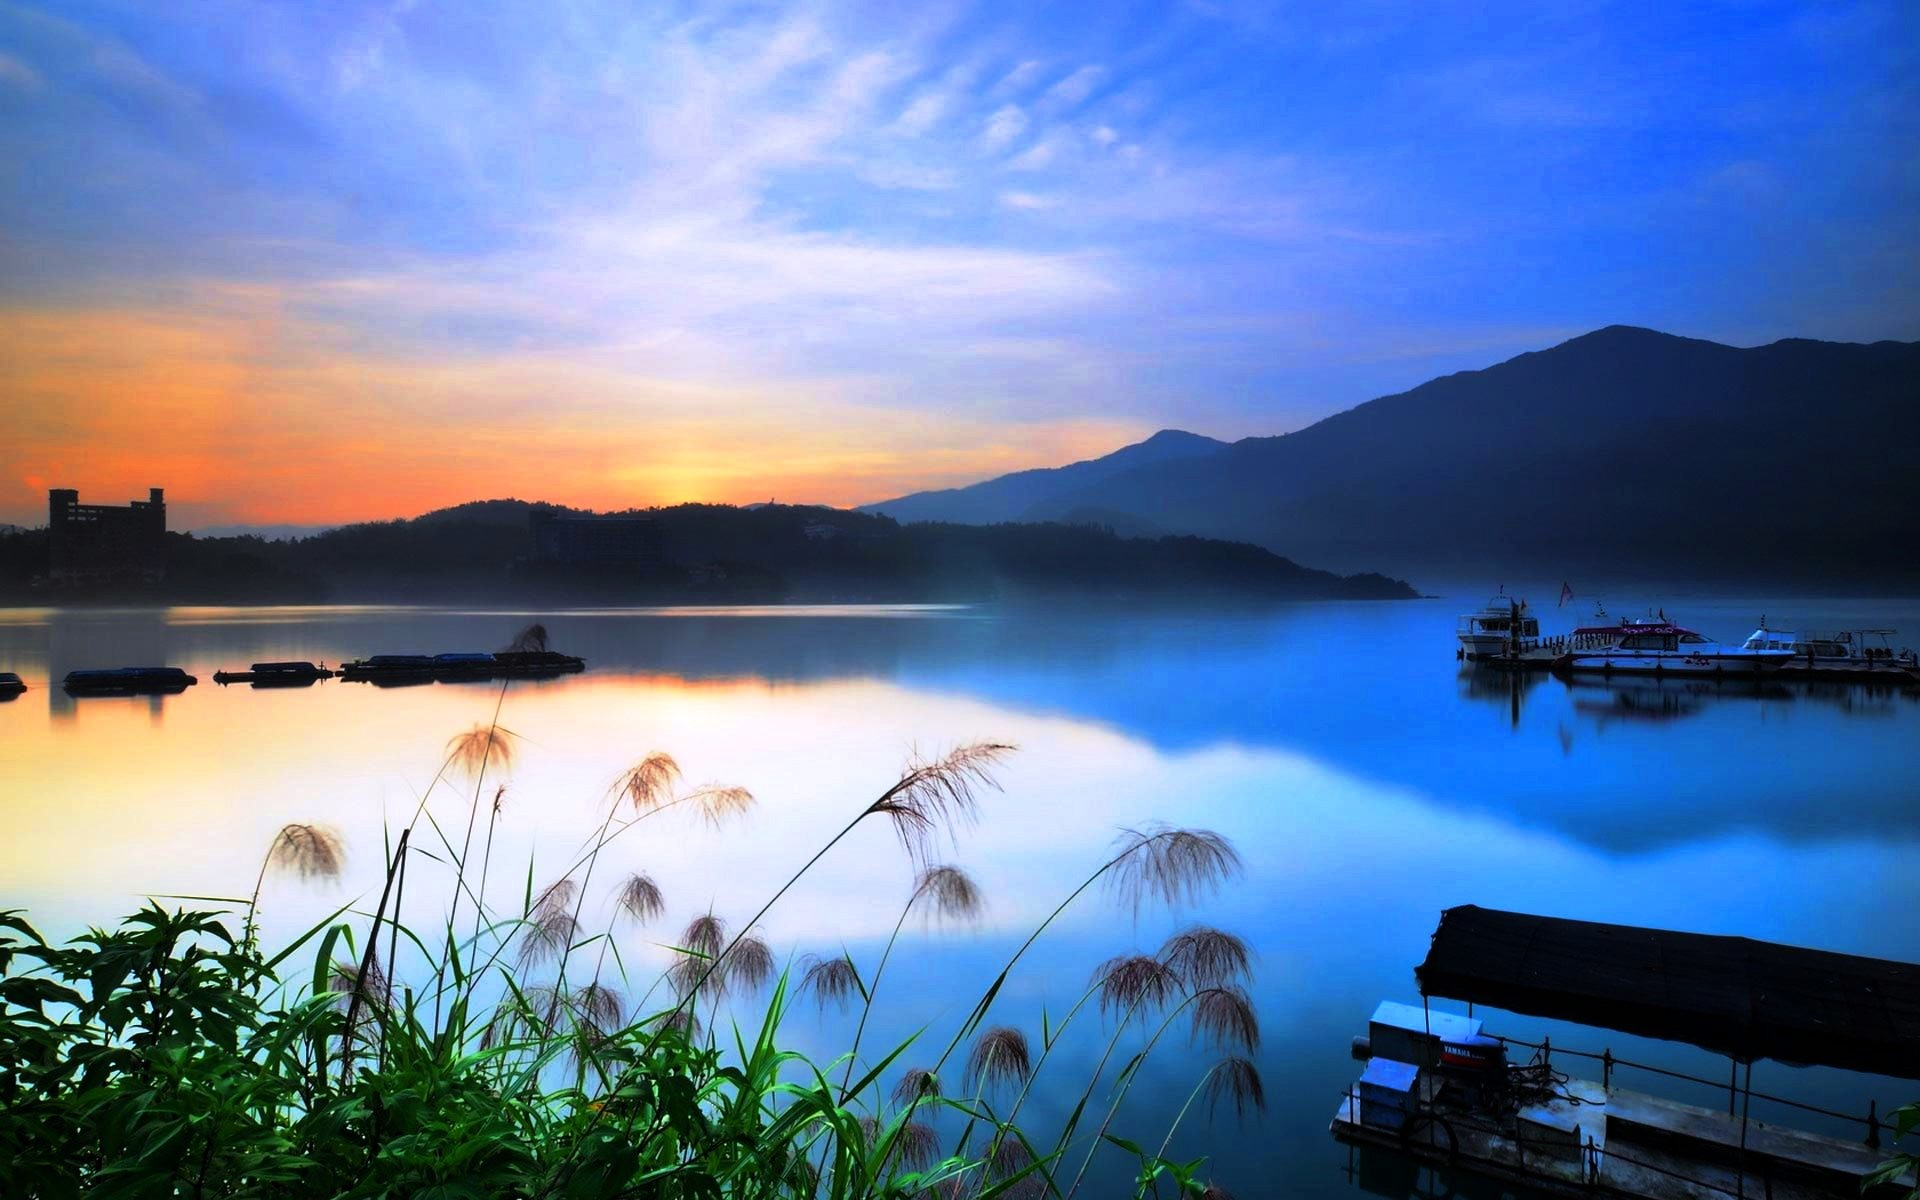 1920x1200 HD Landscape Wallpapers beautiful lake in a morning mist Lake Nature  Wallpapers ,morning mist.